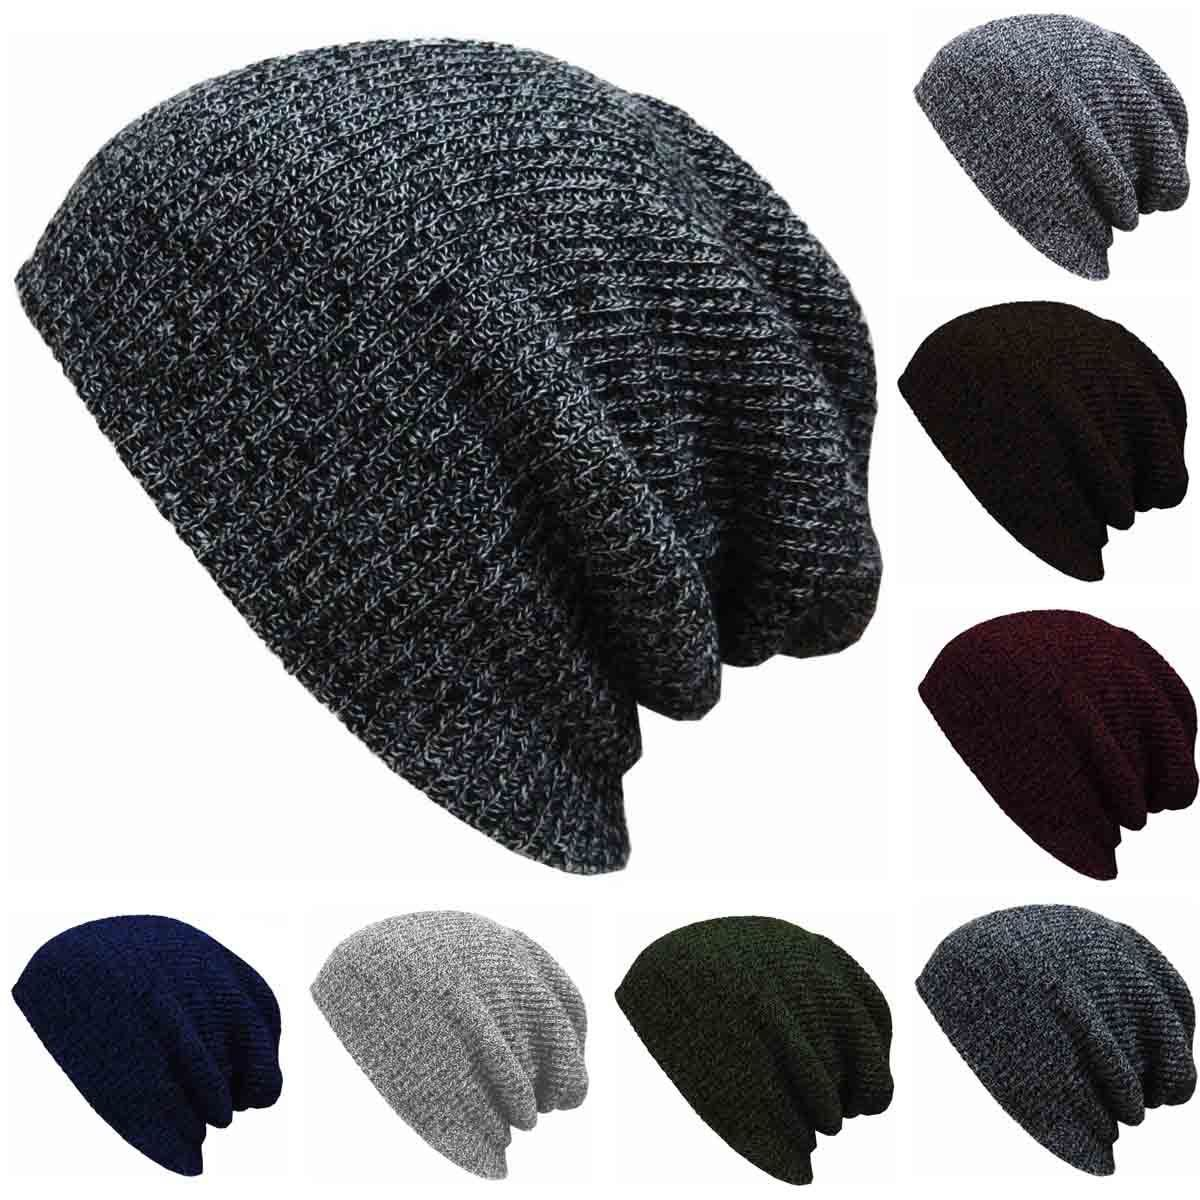 Autumn Winter Men Slouch Skull Oversize Long Beanie Women Baggy Cap Crochet Knit Ski Hat hot winter beanie knit crochet ski hat plicate baggy oversized slouch unisex cap